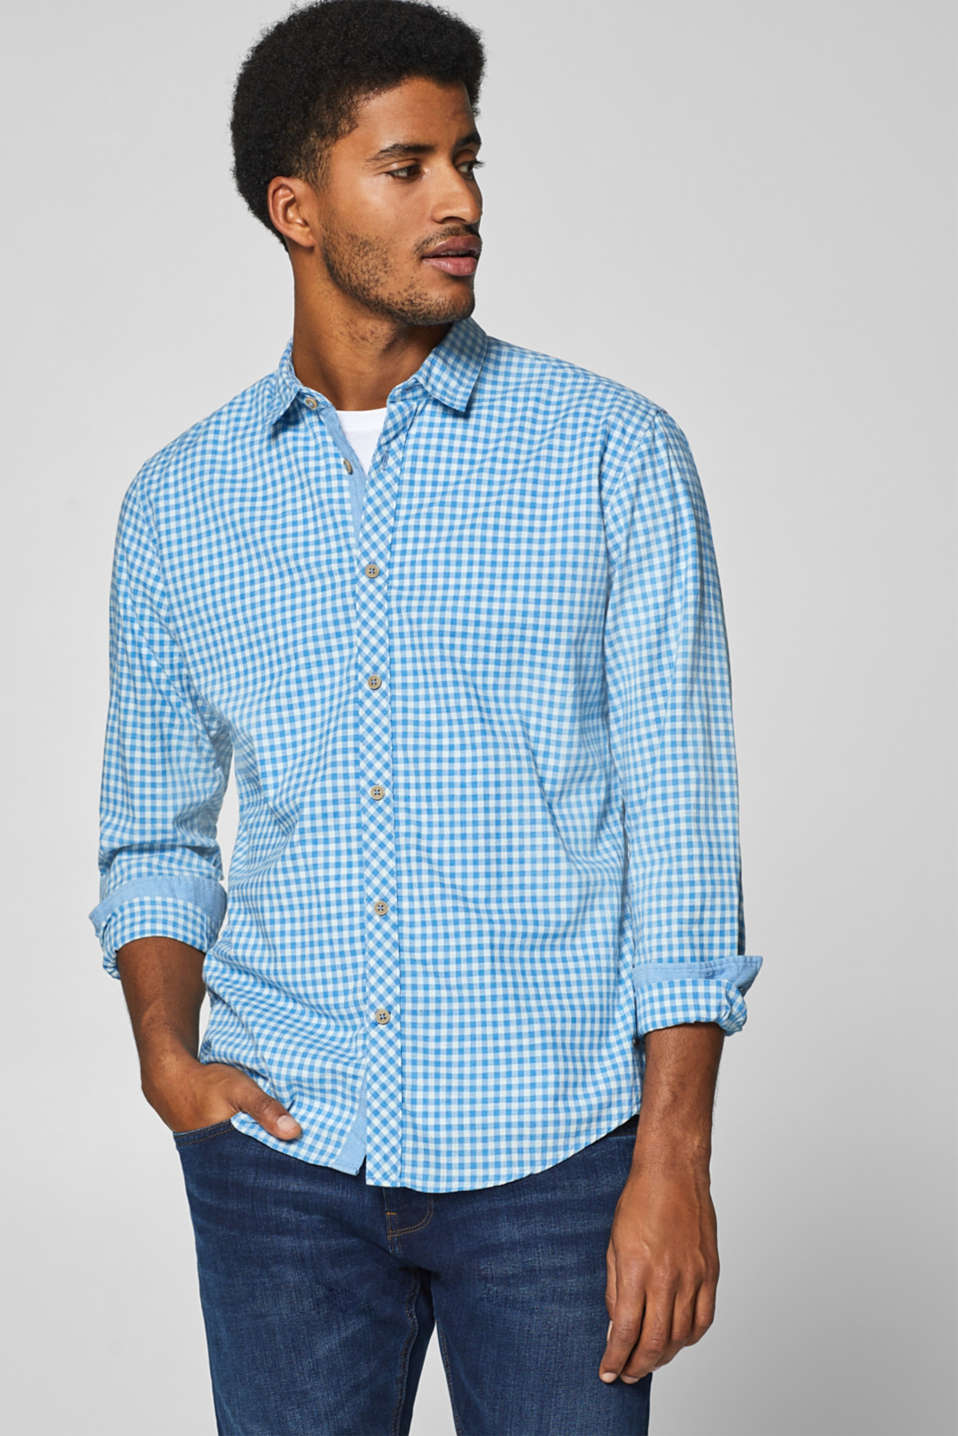 Esprit - Check shirt in 100% cotton